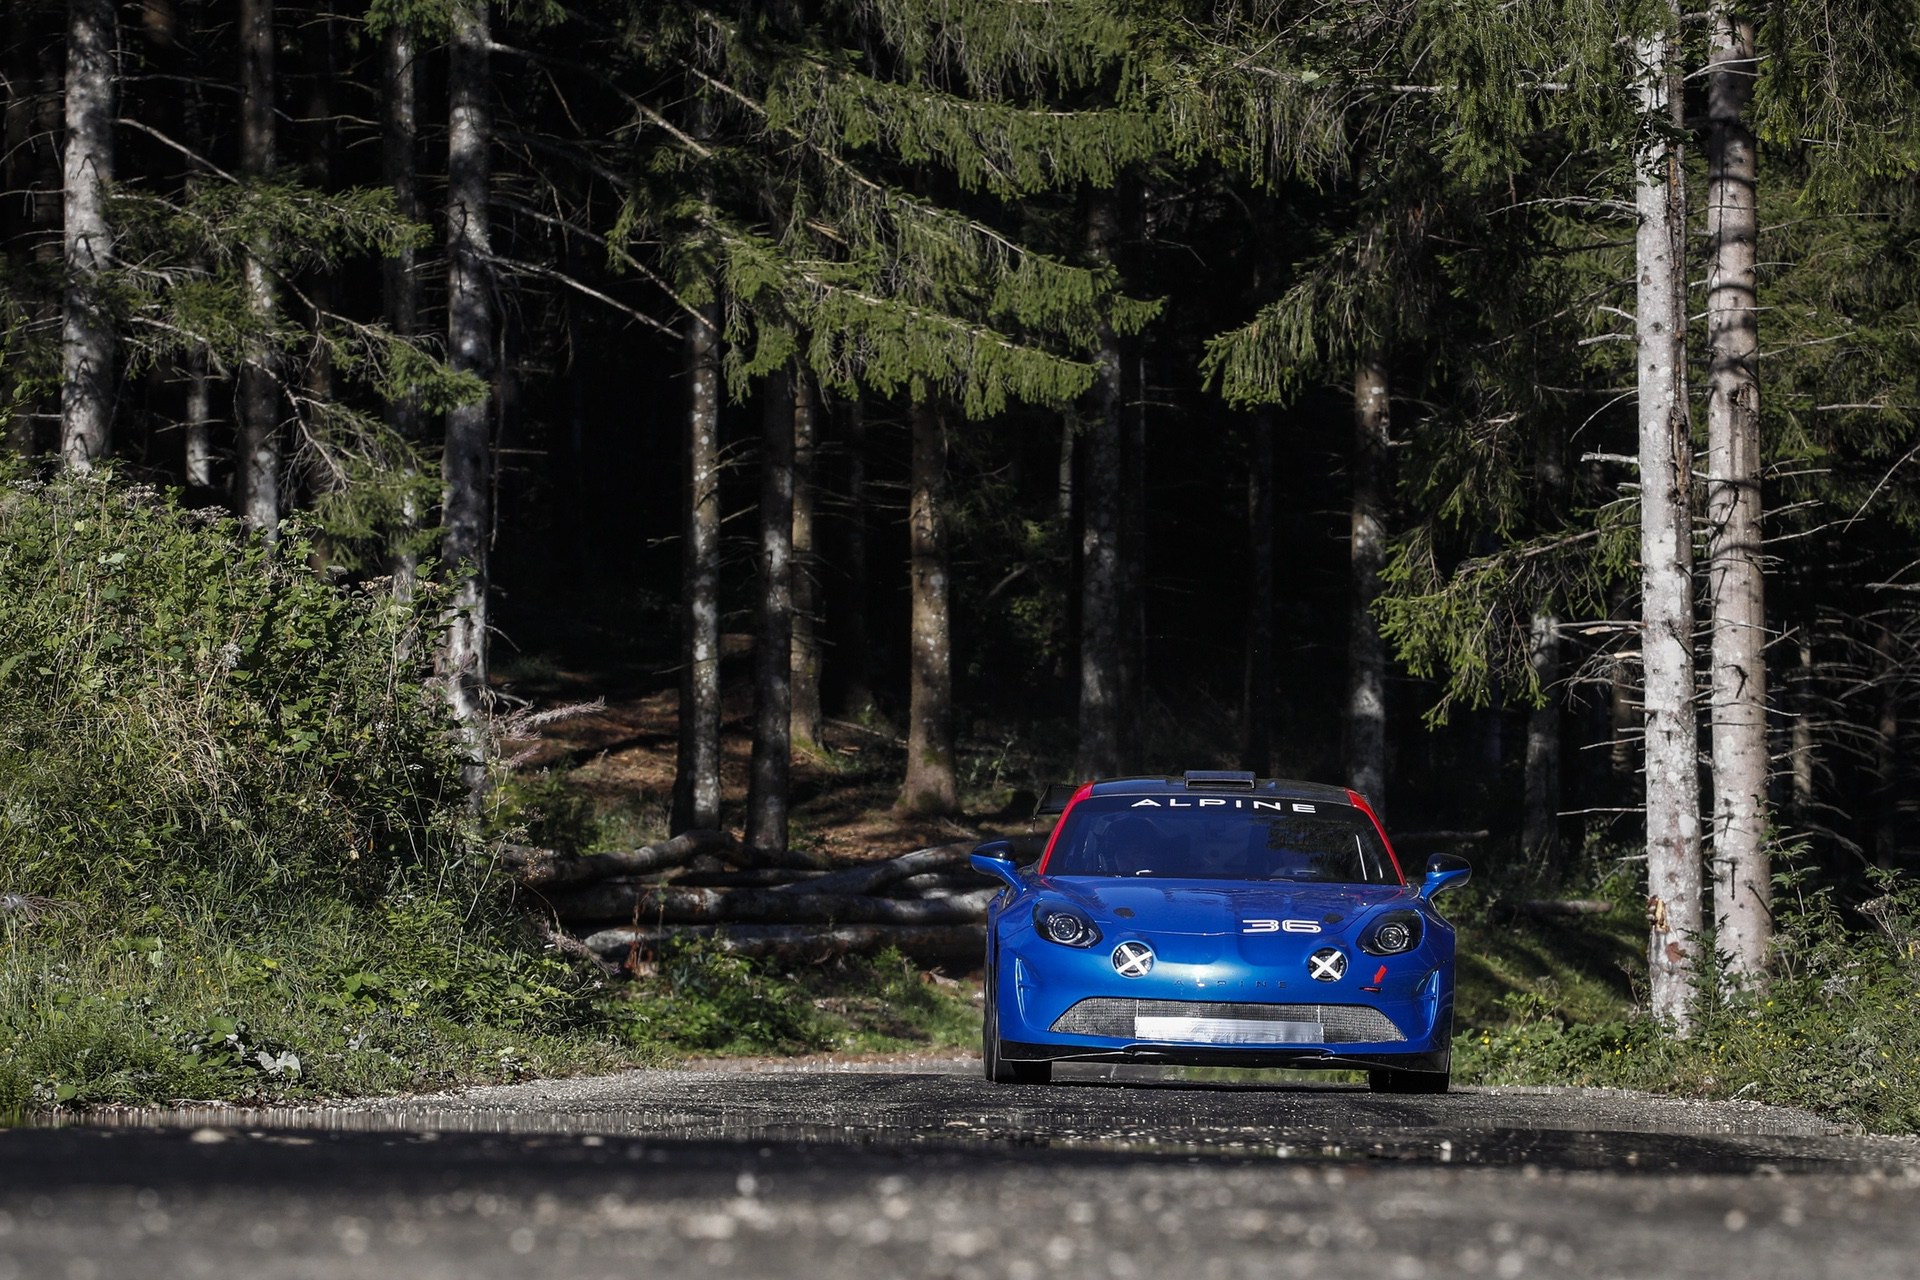 2019 - ALPINE A110 RALLY